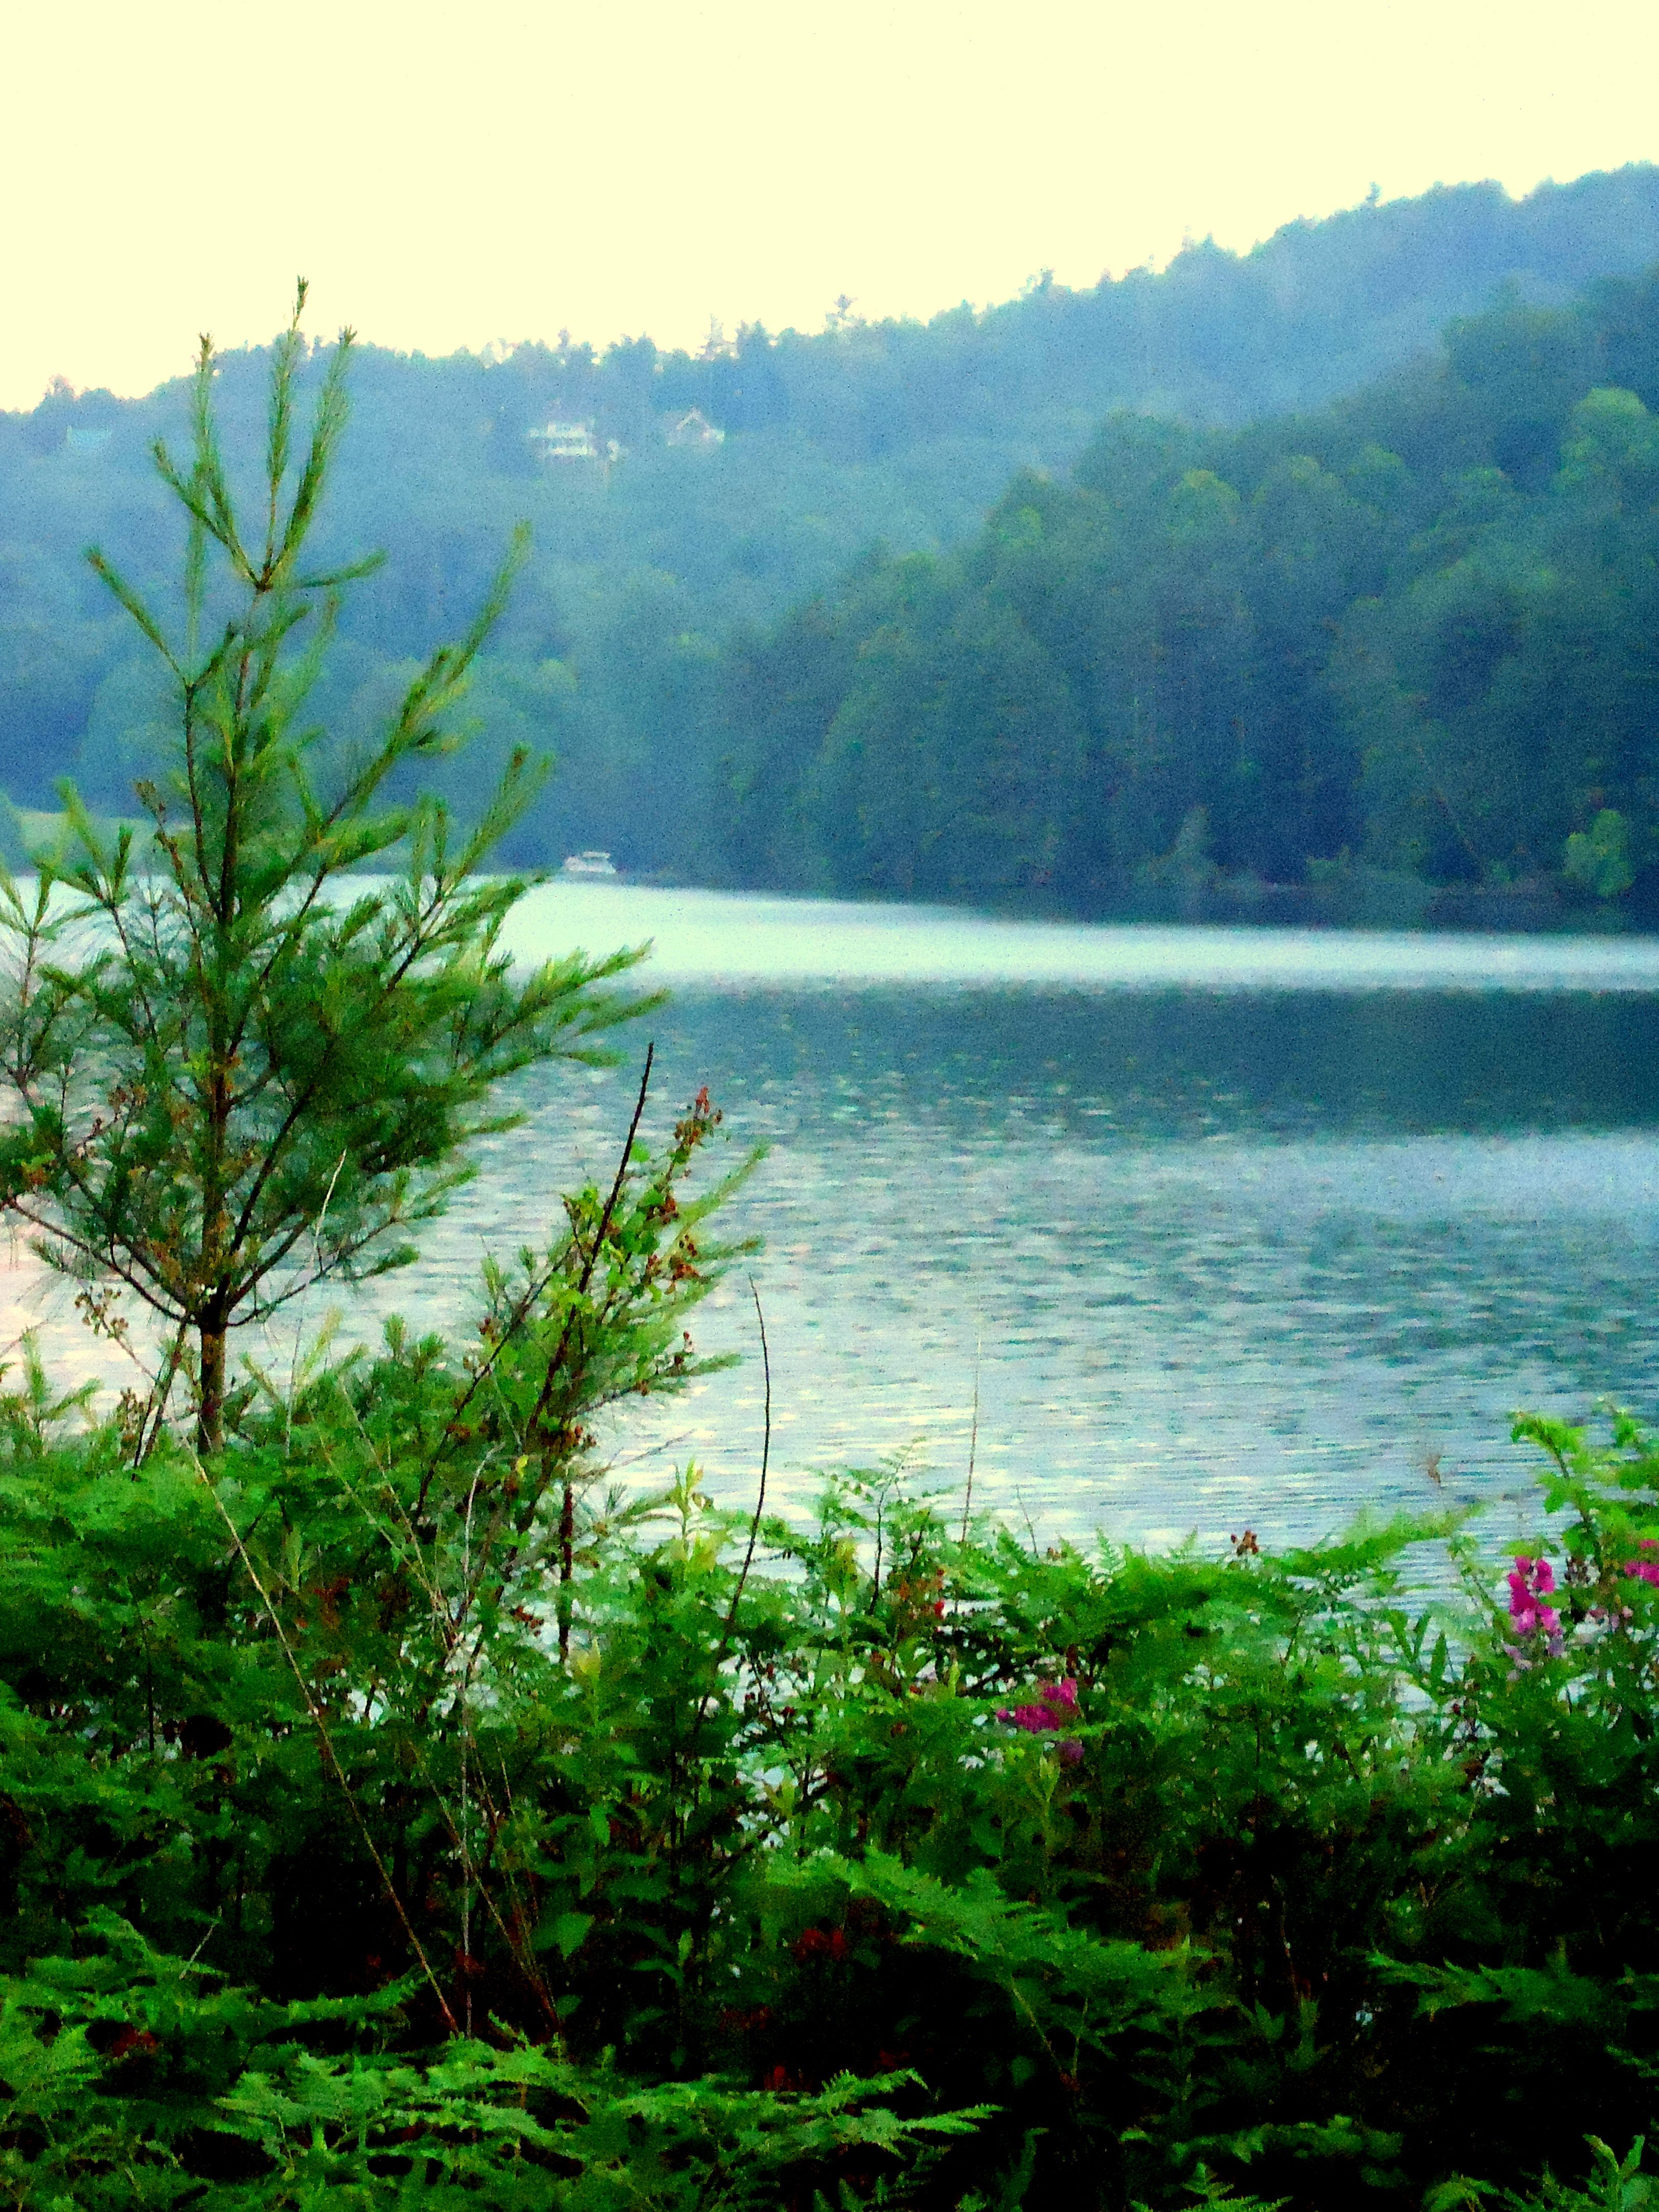 Lake Glenville NC At Dusk Location Approx Ft Above Sea Level - My location sea level